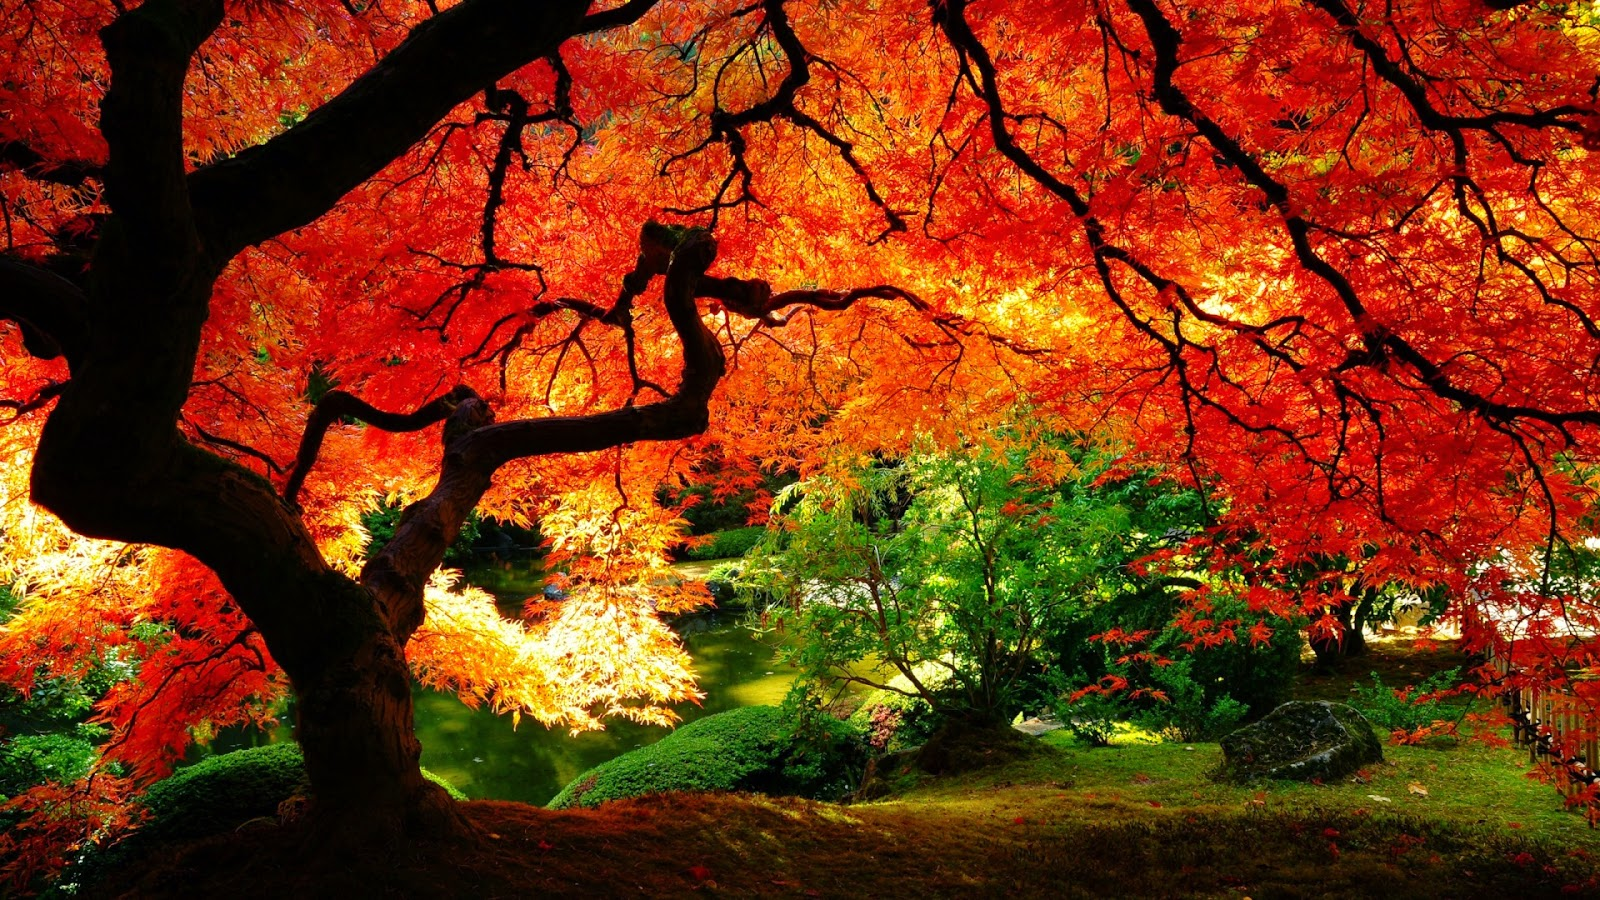 wallpaper of autumn season